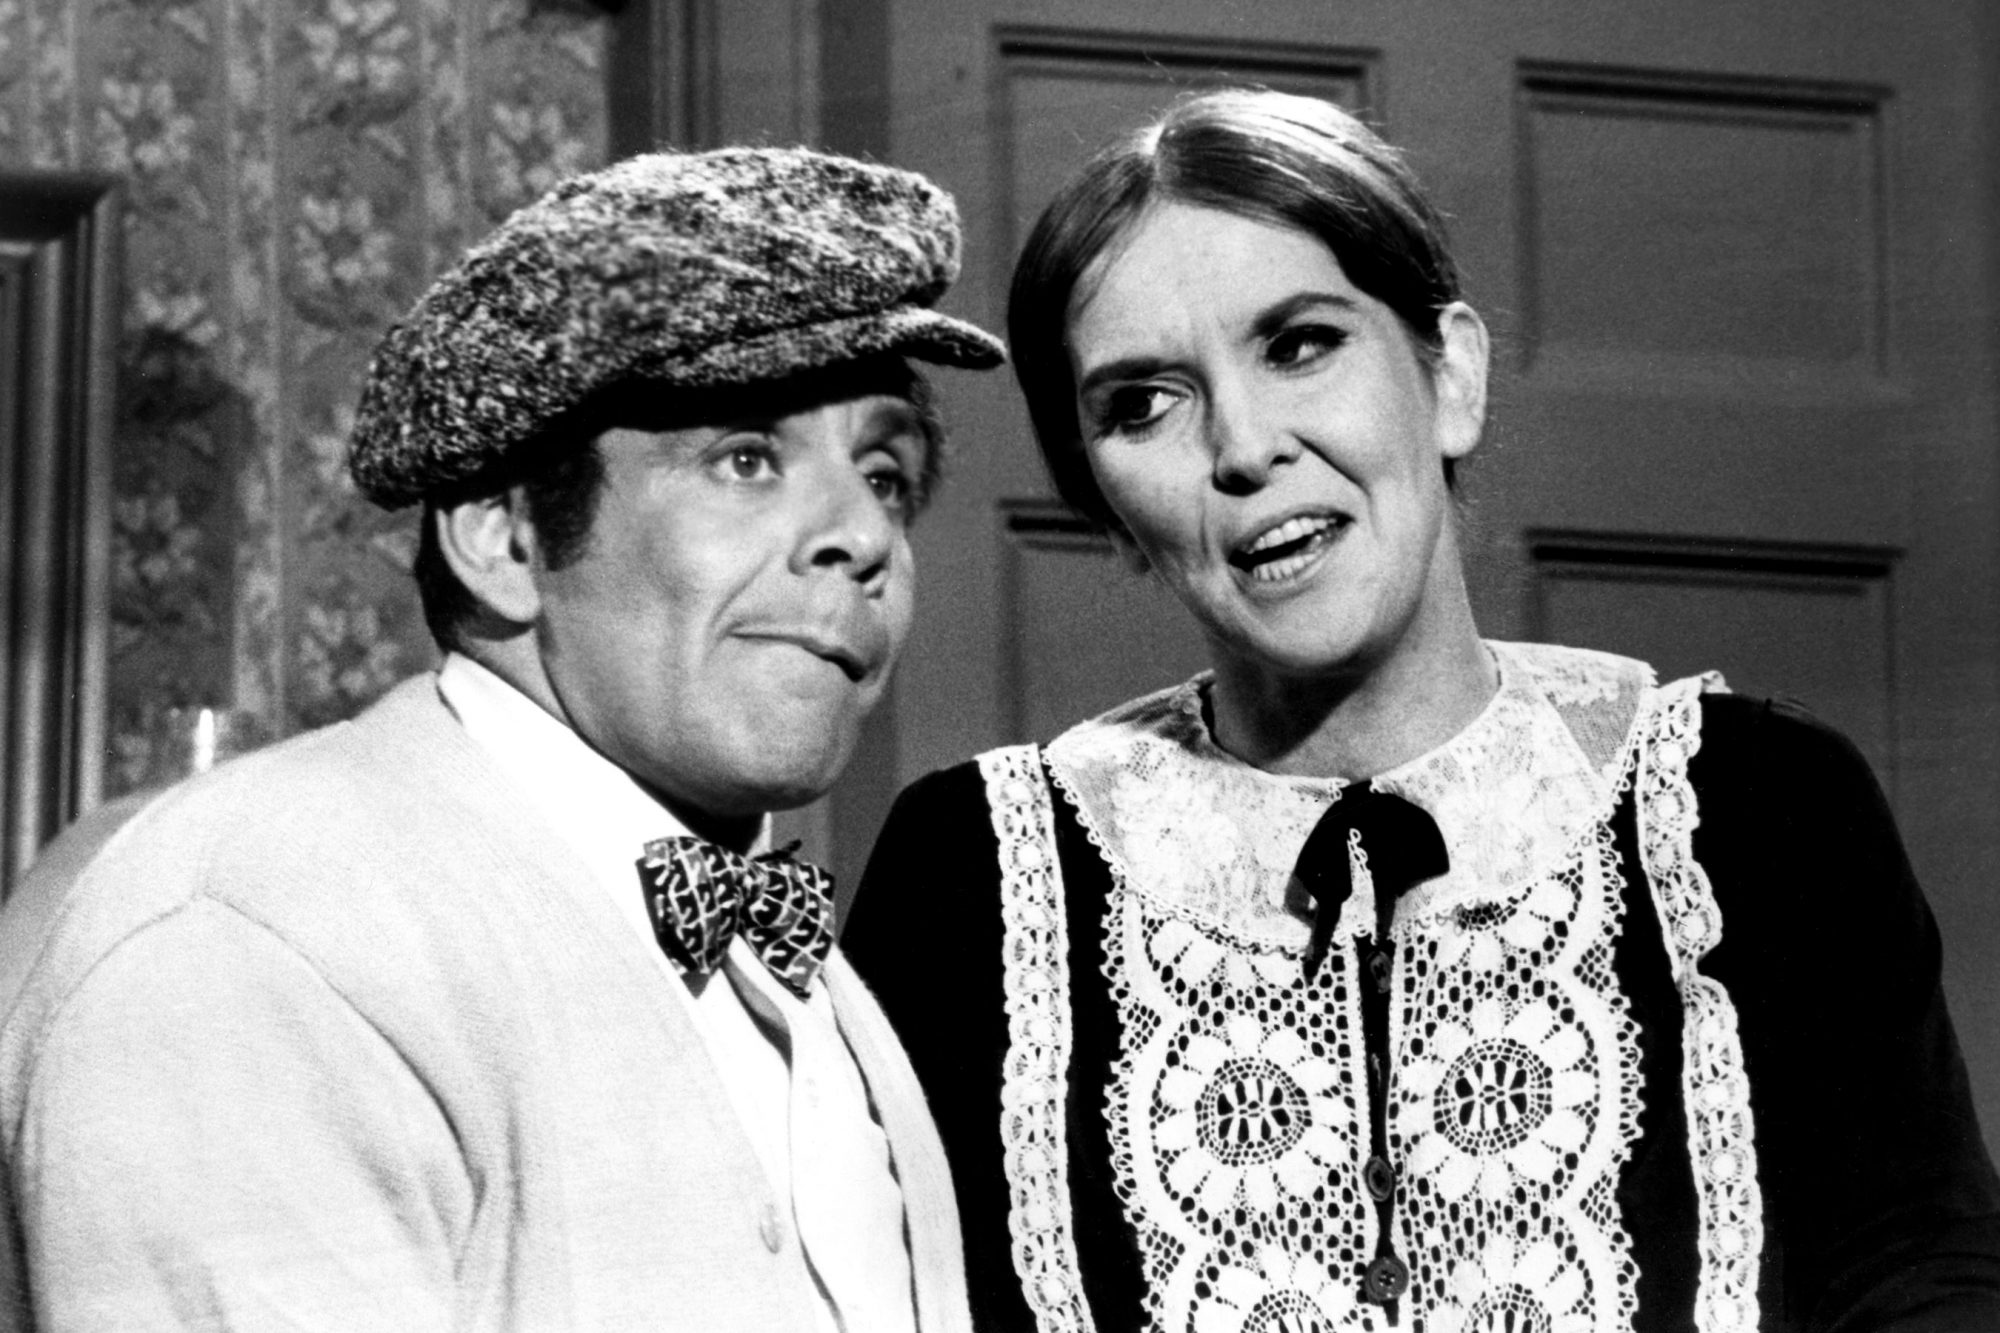 THE SUMMER SMOTHERS BROTHERS SHOW, from left, Jerry Stiller, Anne Meara, aired August 18, 1968